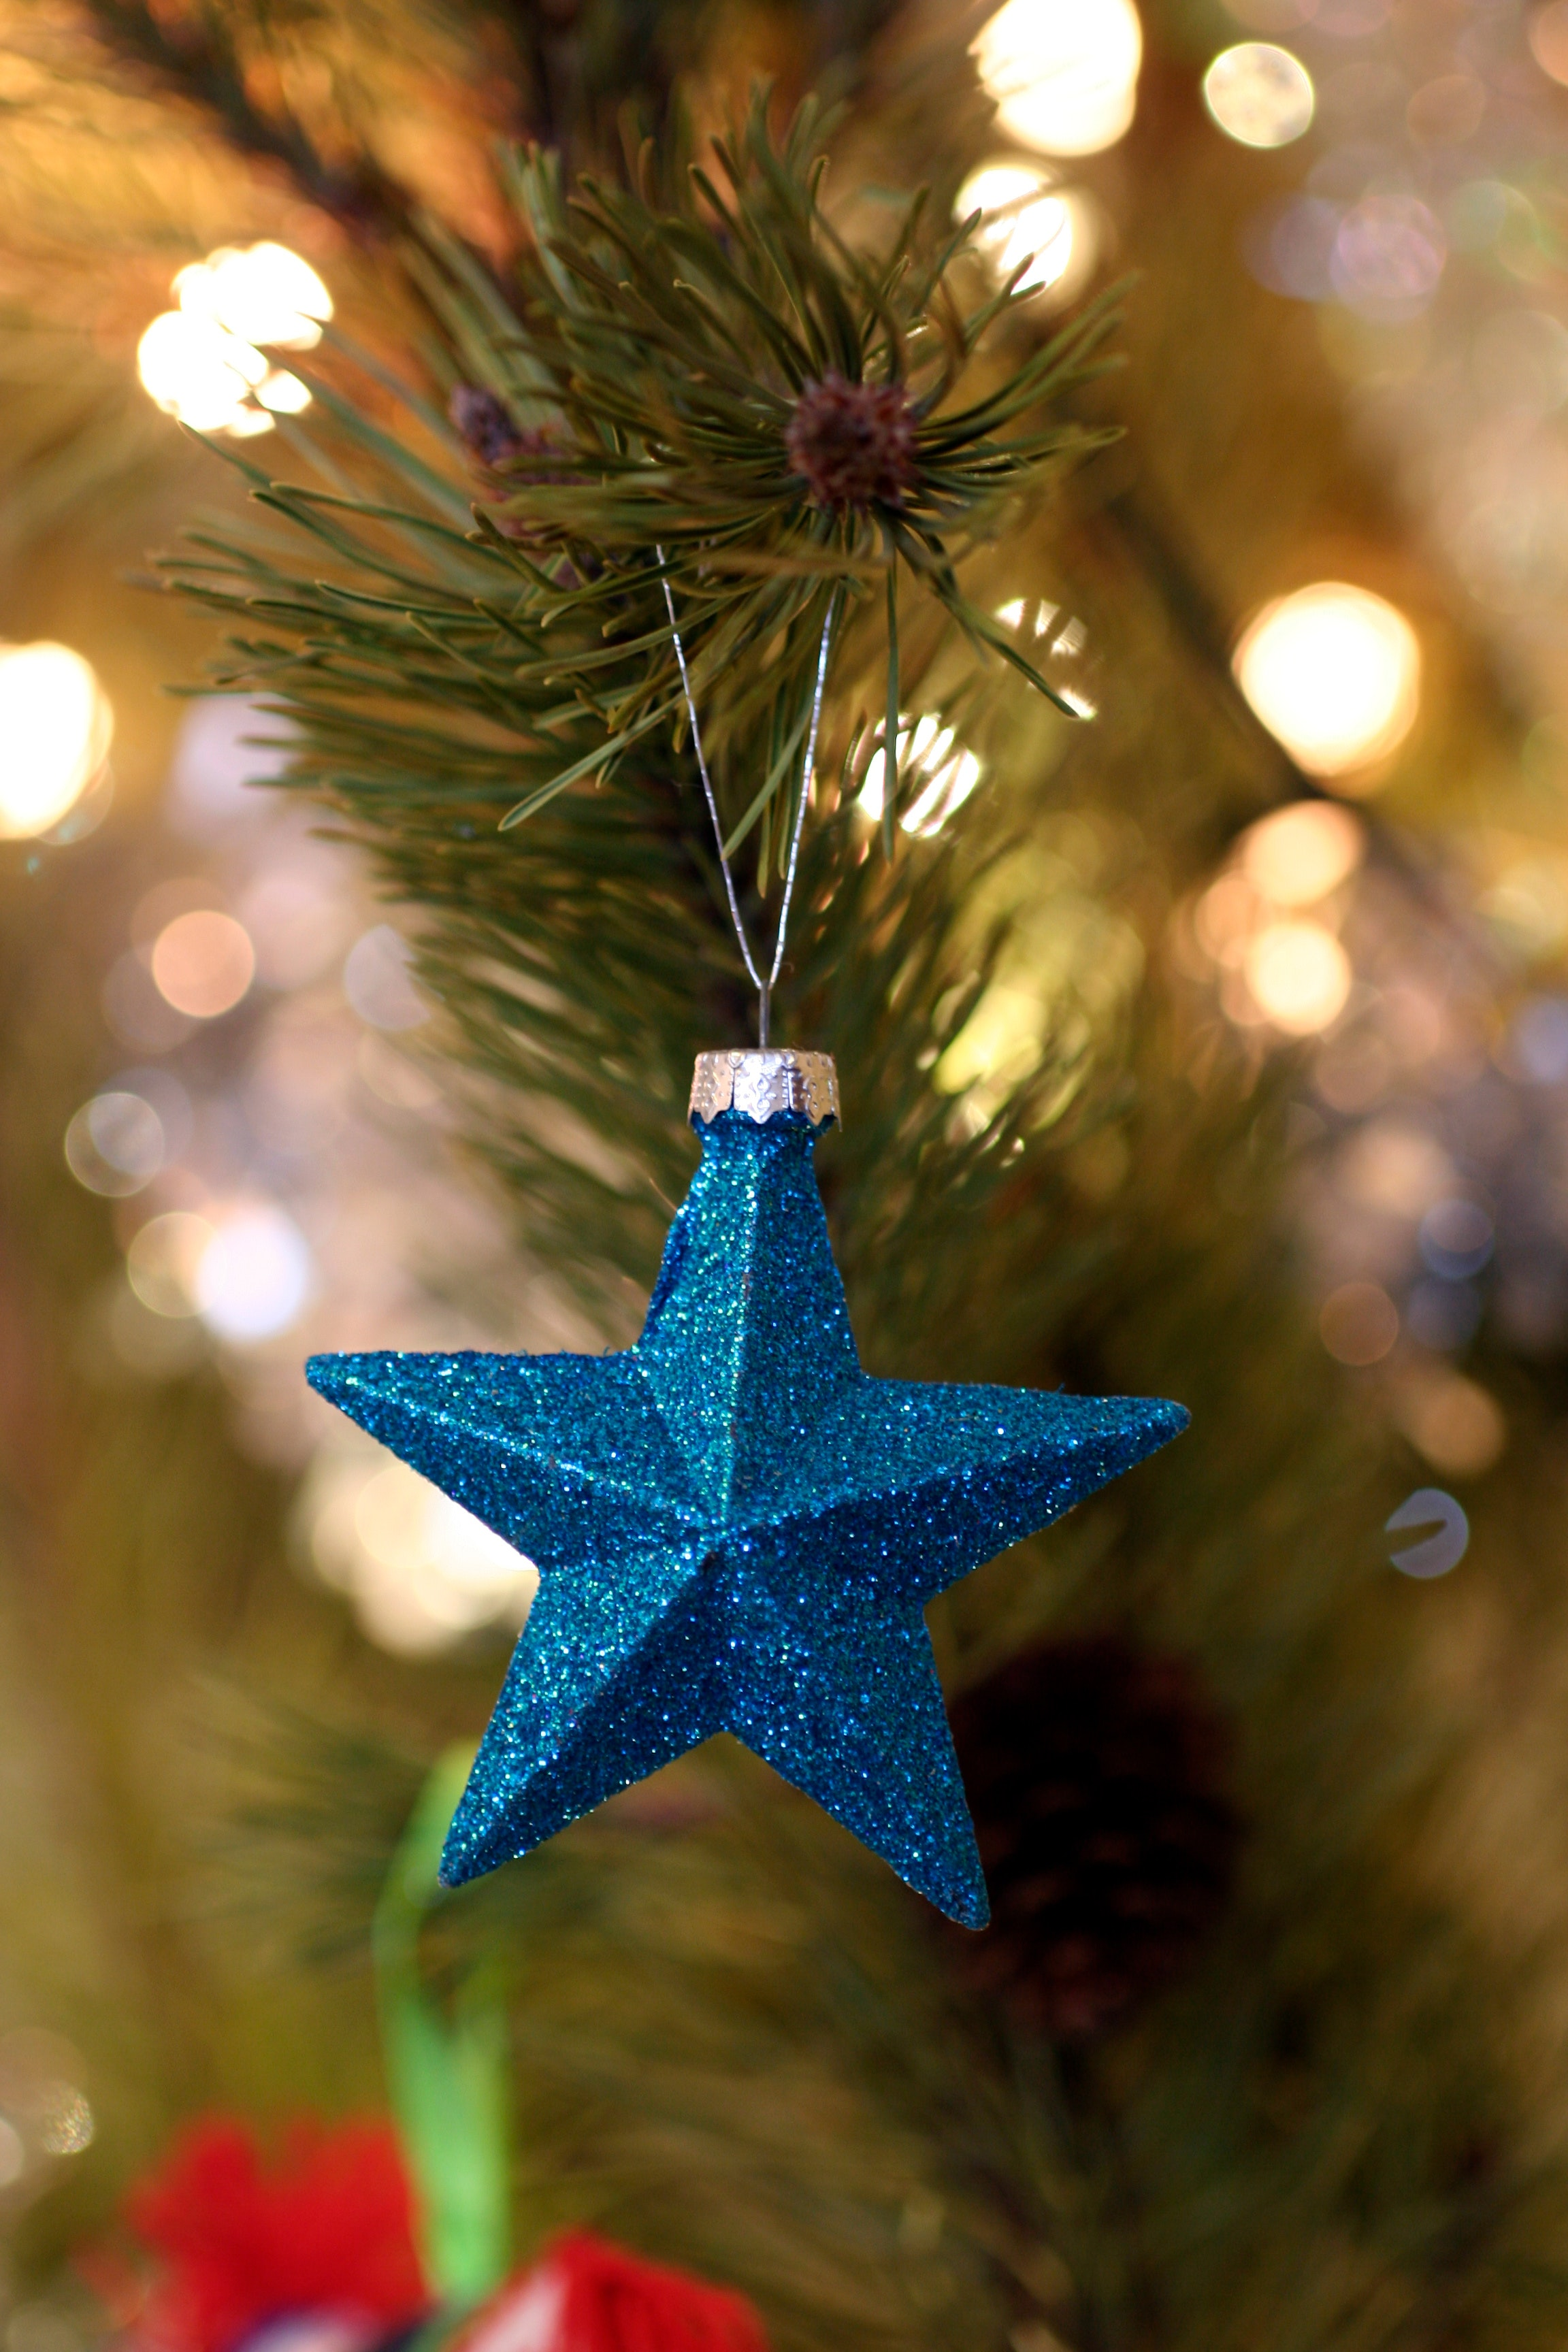 Shallow Focus Photography of Blue Star Christmas Tree Decor, Gold, Tree, Star, Shining, HQ Photo